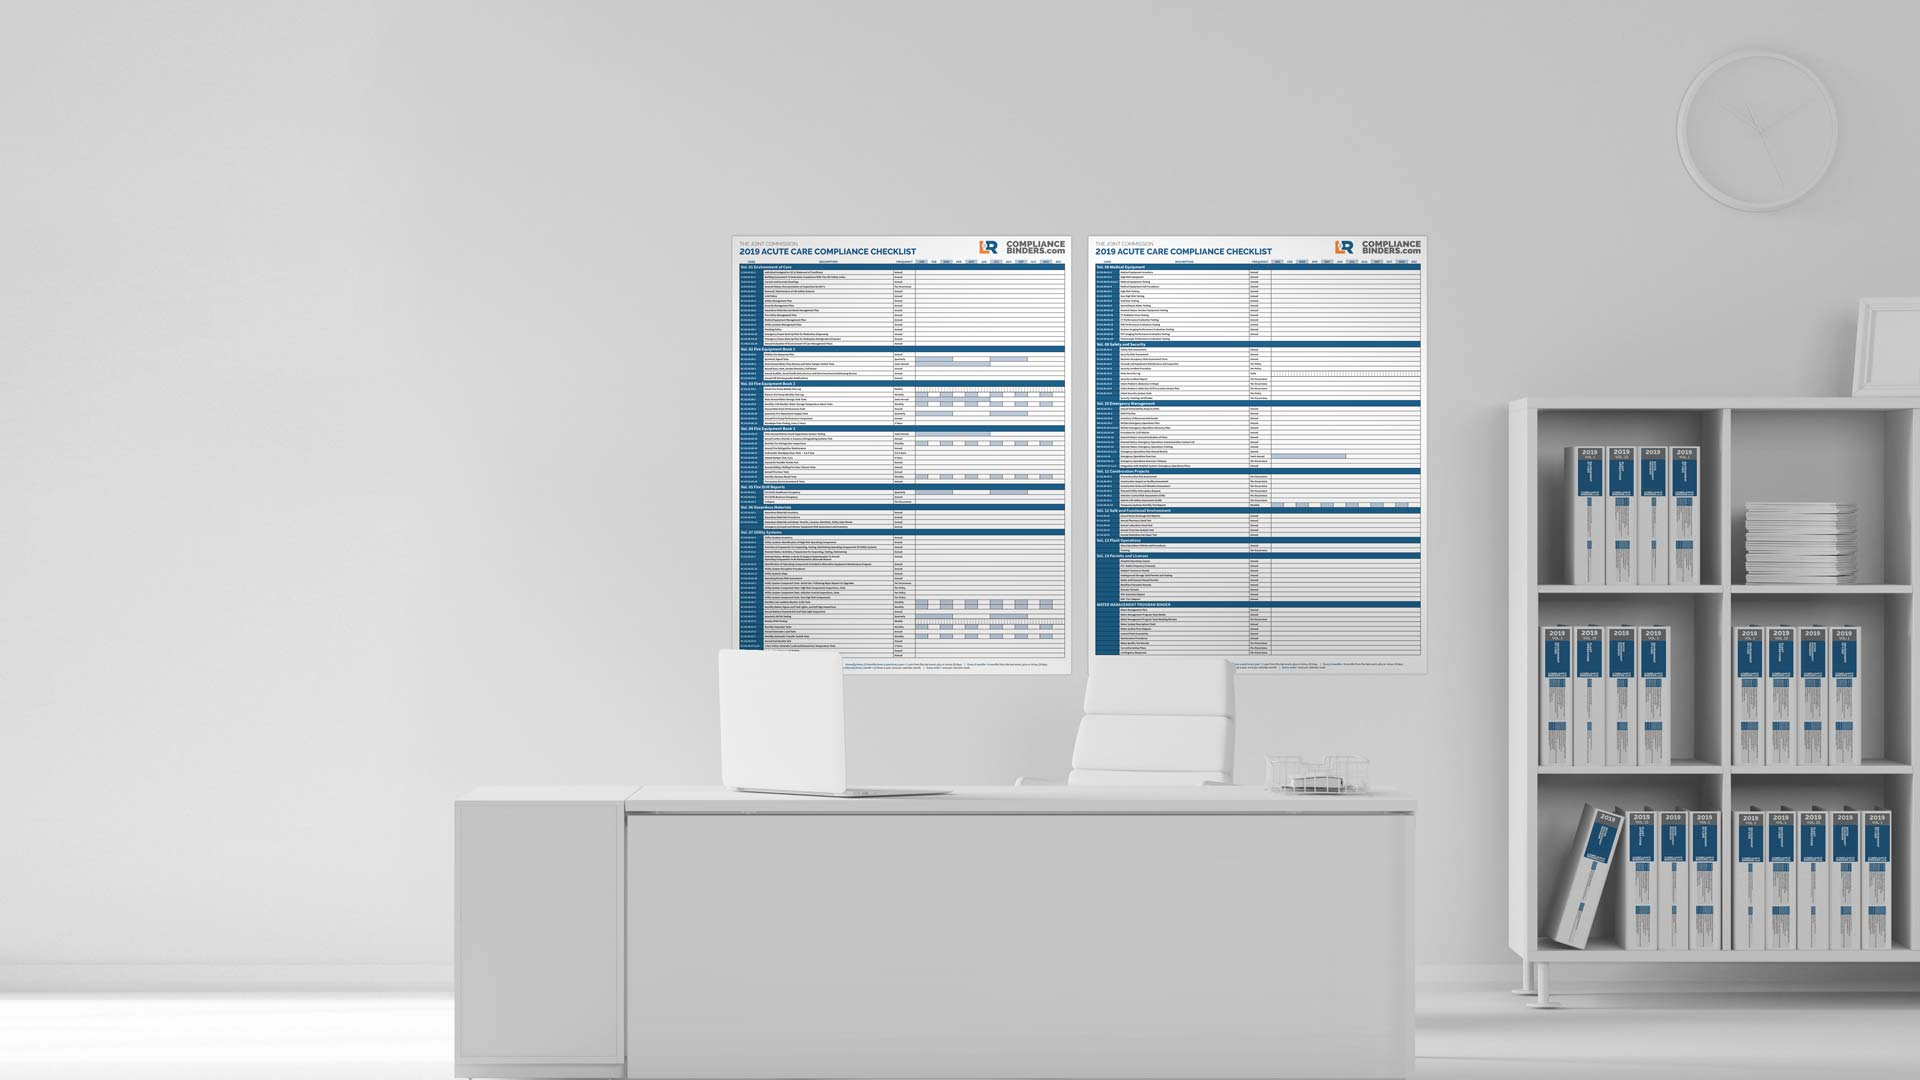 Joint Commission Inspection Checklist Binders